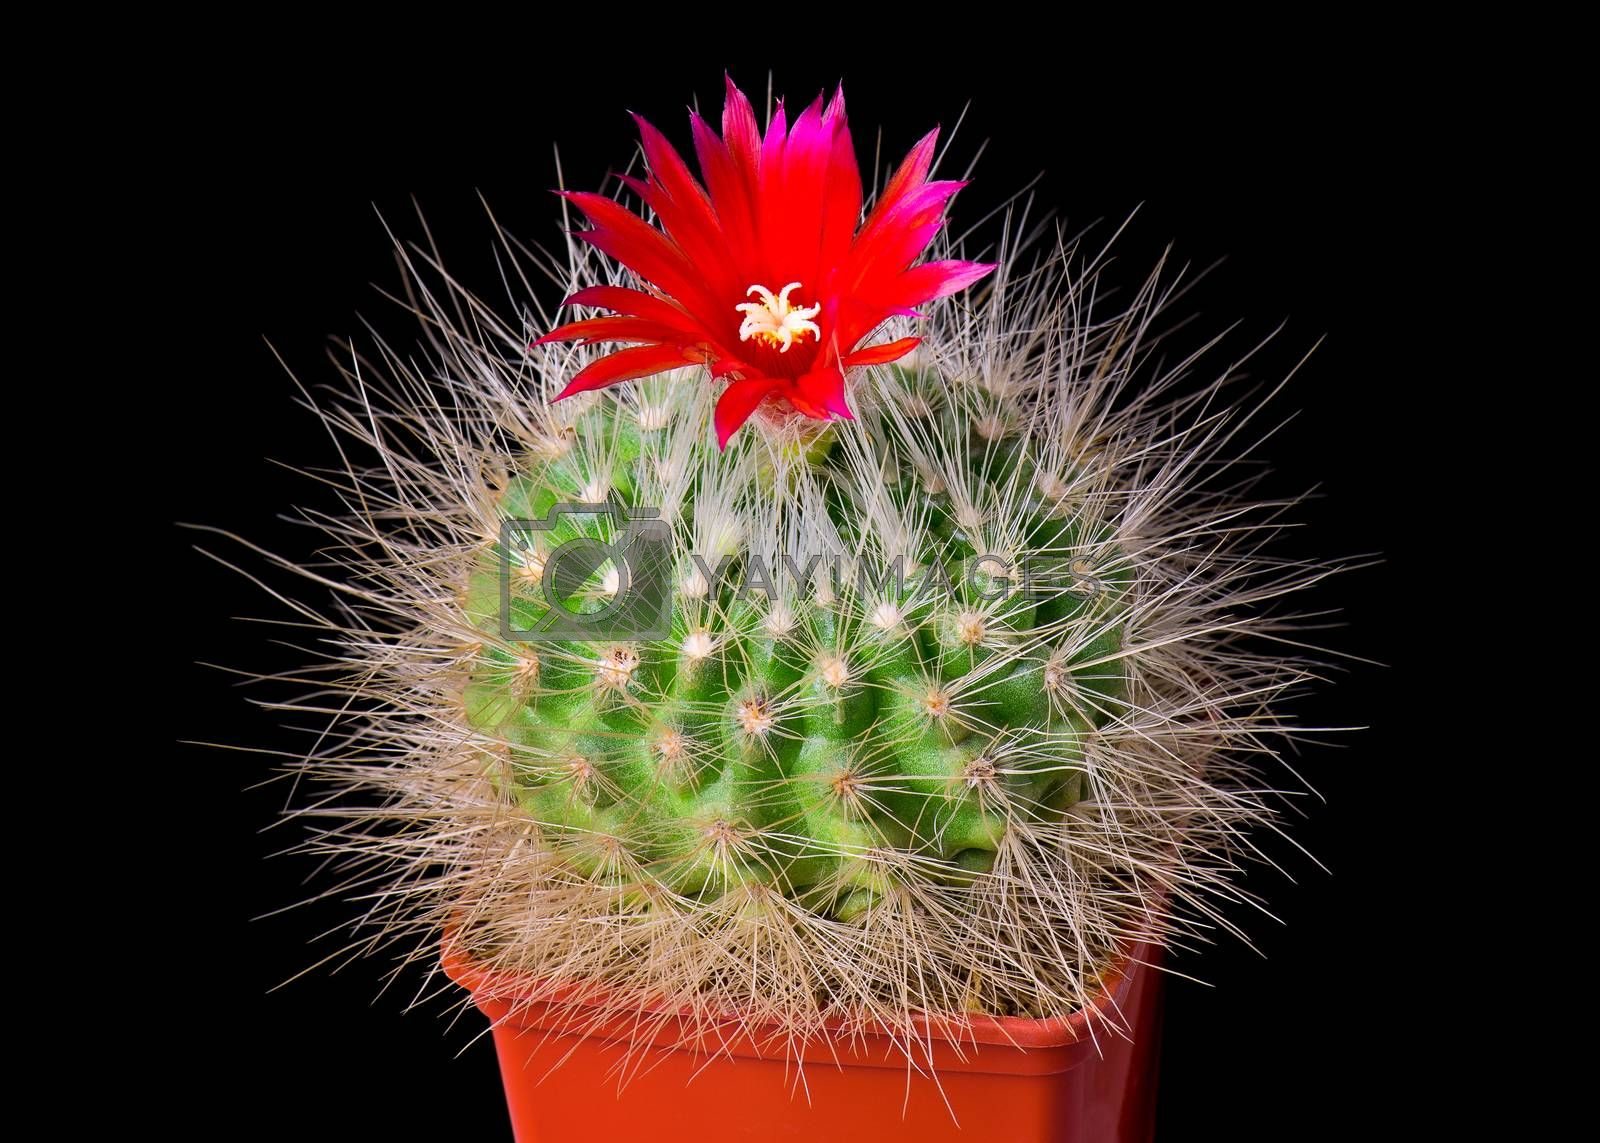 Beautiful cactus or cacti flowers which are in their colorful blooming on black background. Opening red Parodia penicillata.